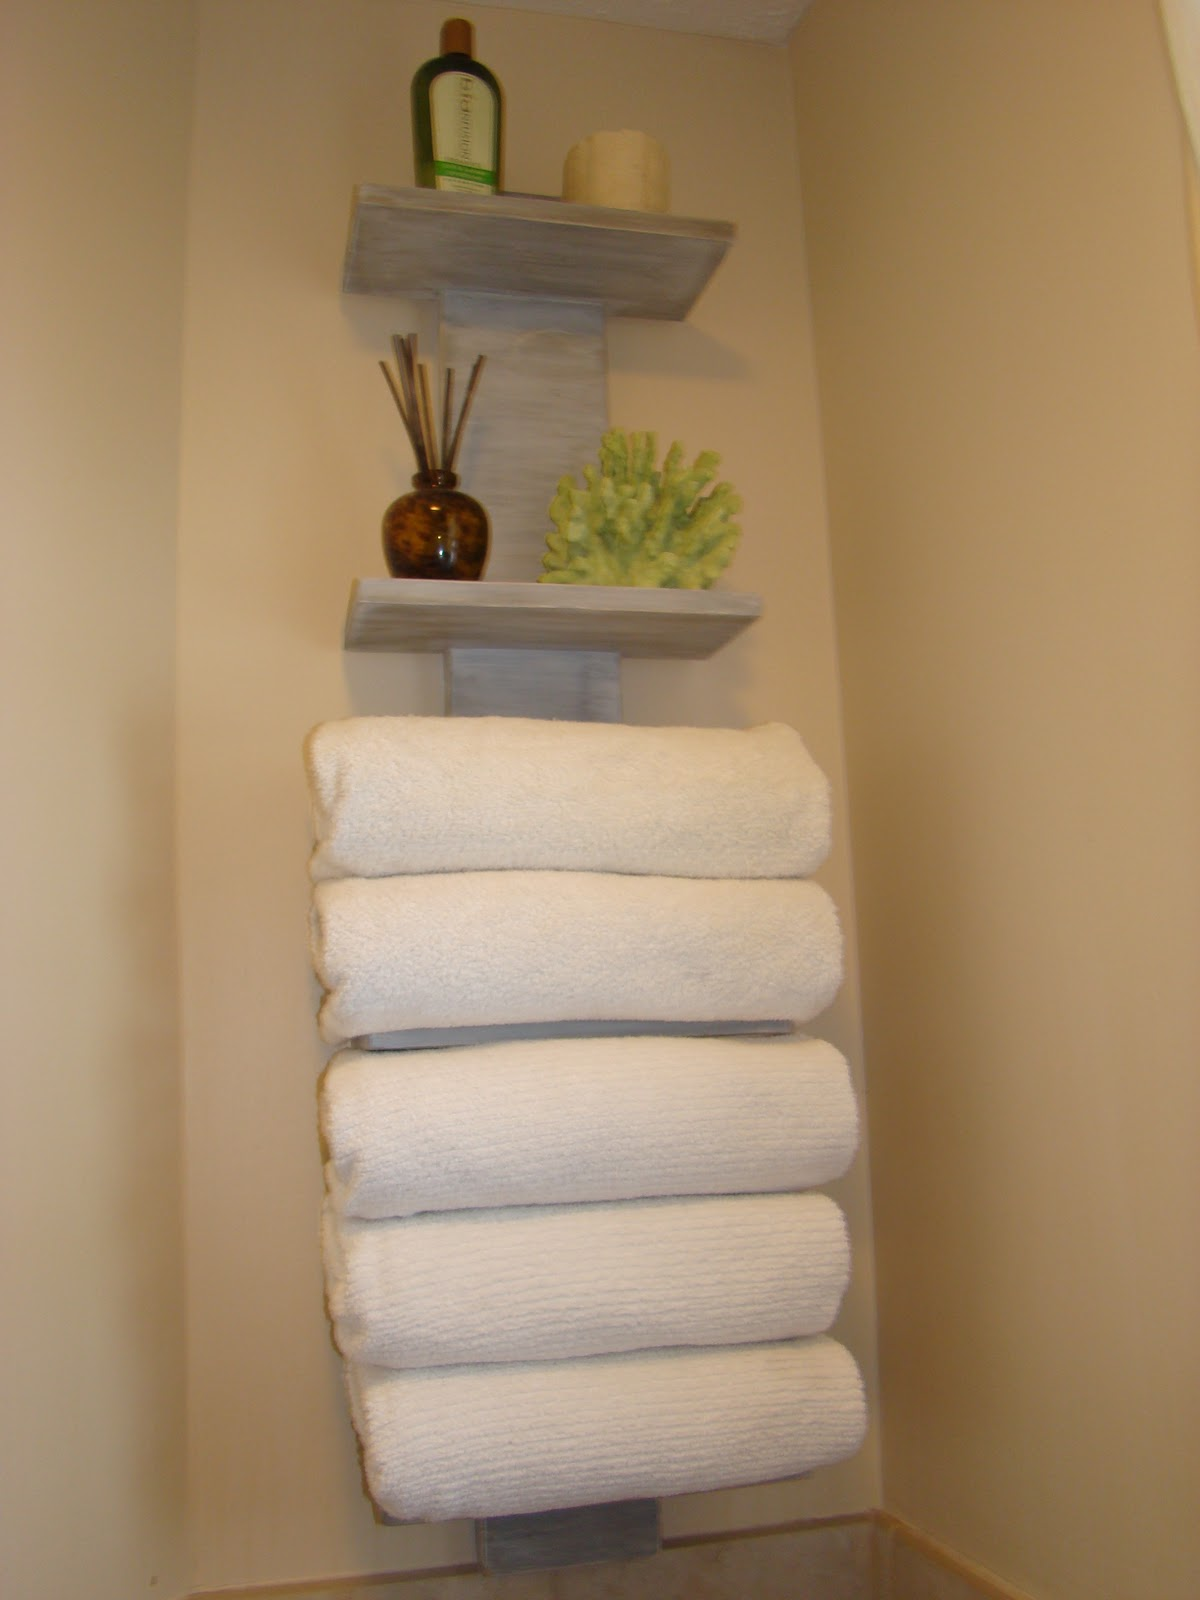 My bath finally gets some towel storage for Towel storage for bathroom ideas